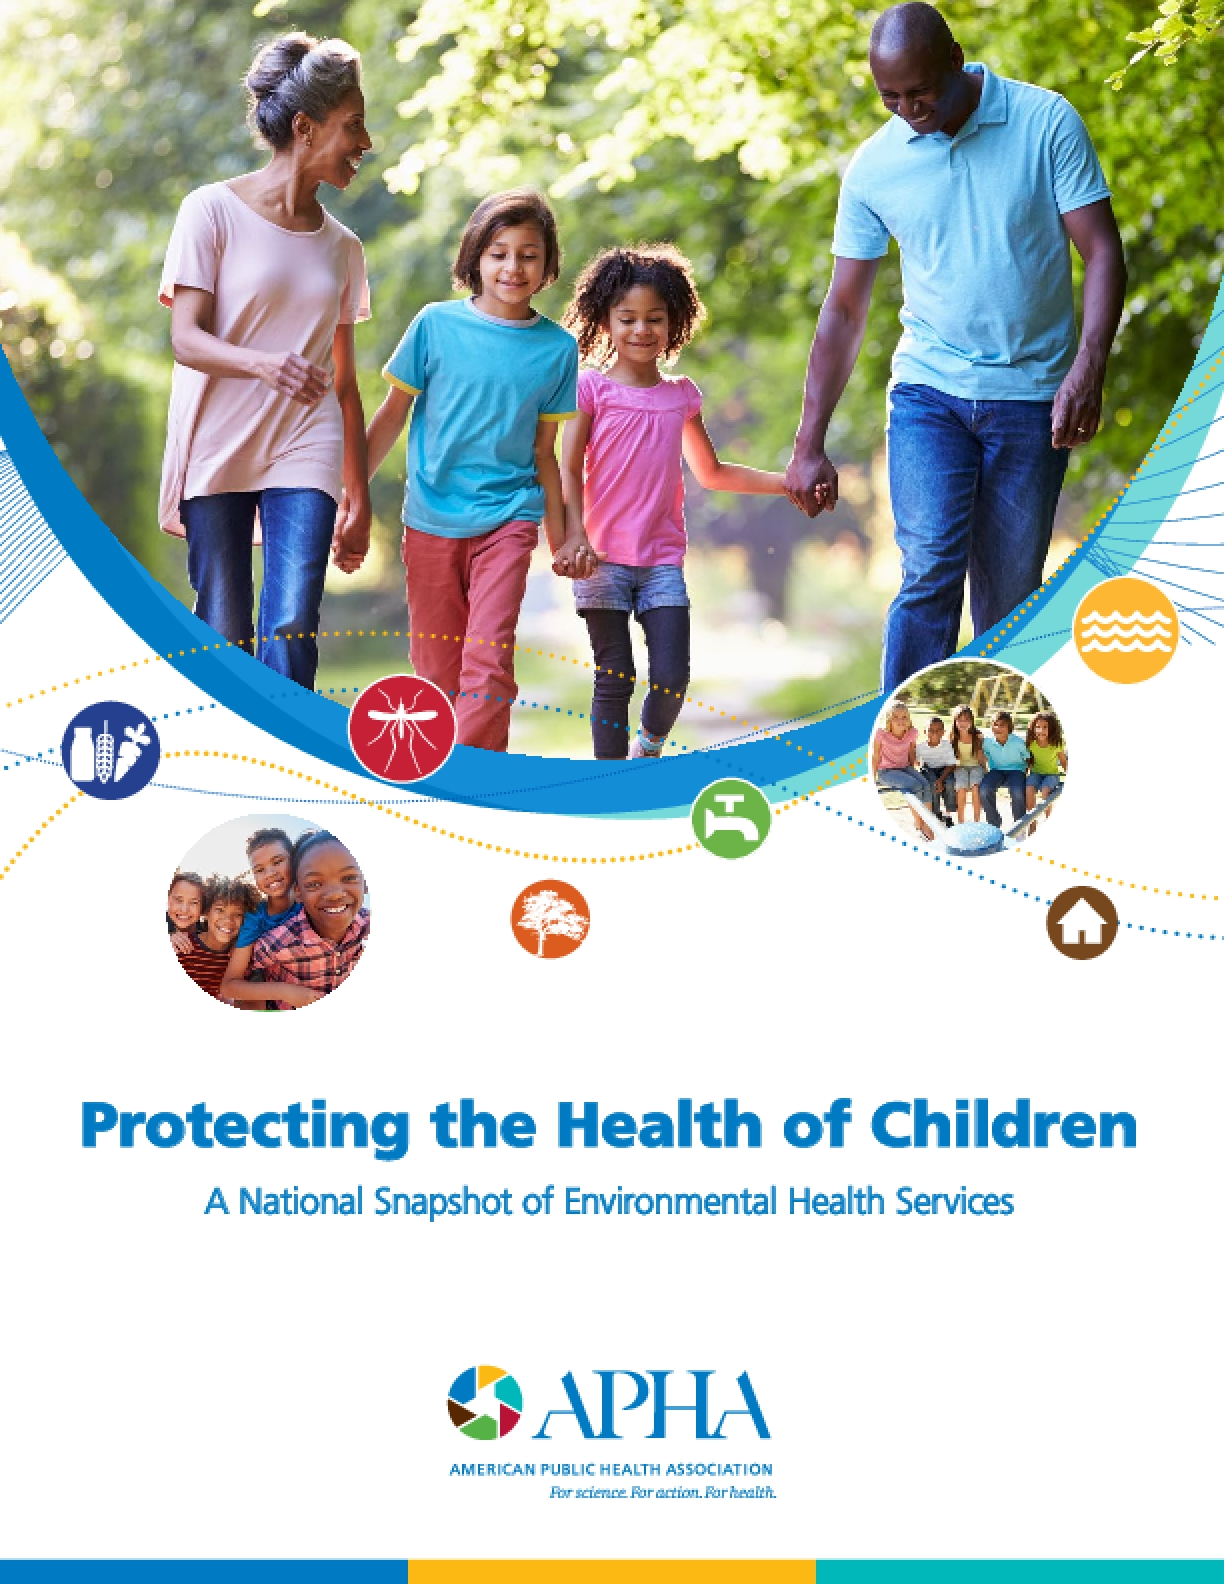 Protecting the Health of Children: A National Snapshot of Environmental Health Services